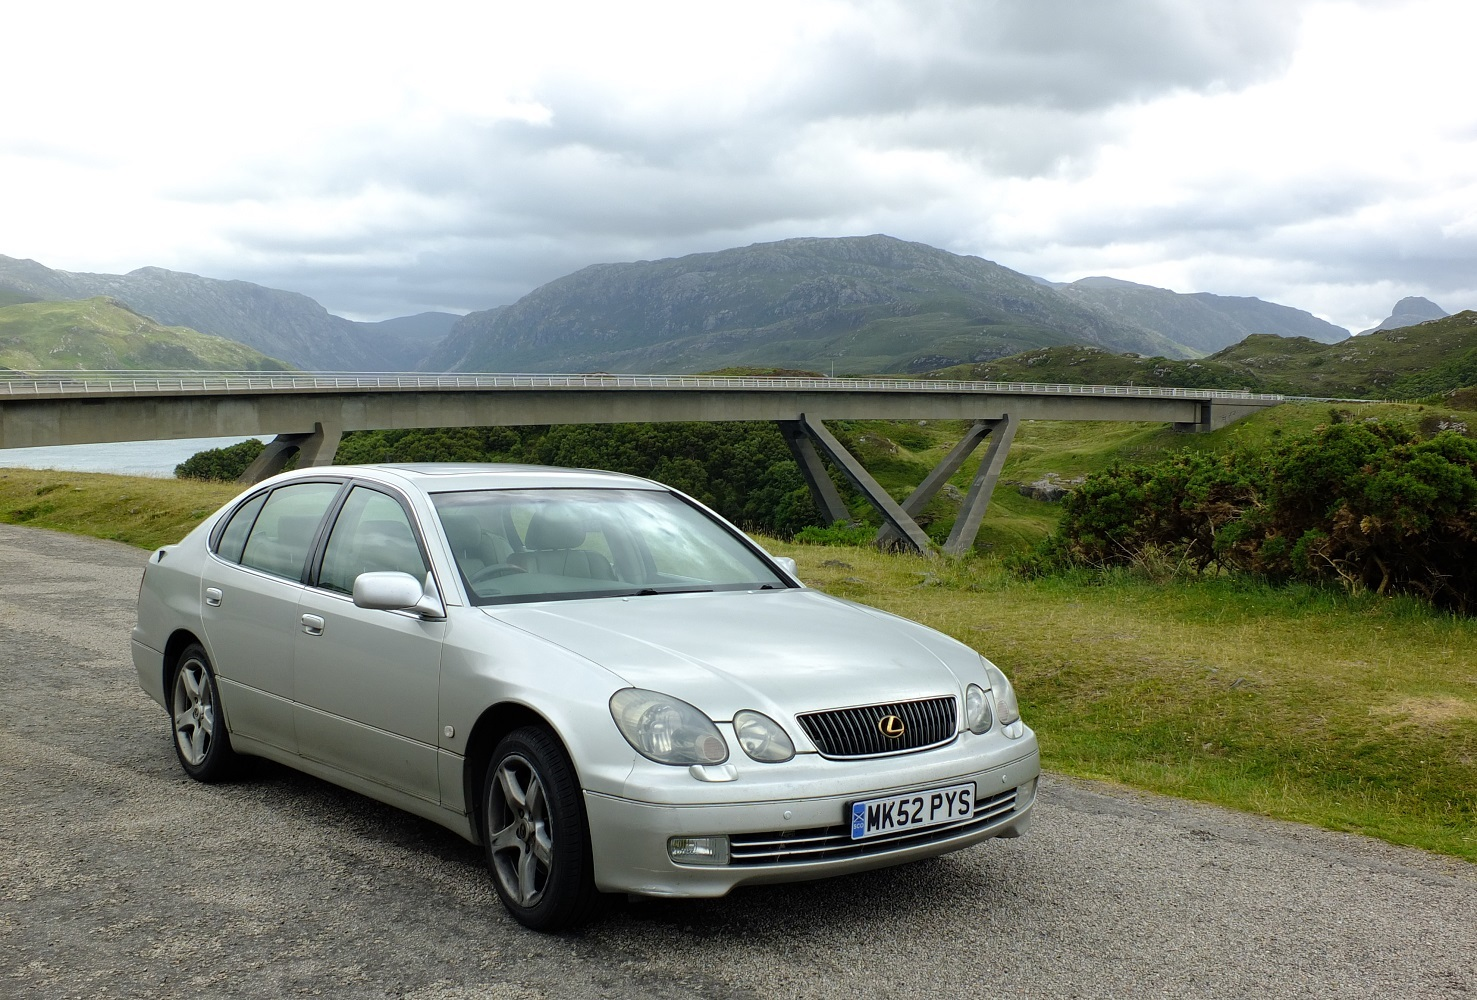 Lexus GS430 next to Kylesku Bridge